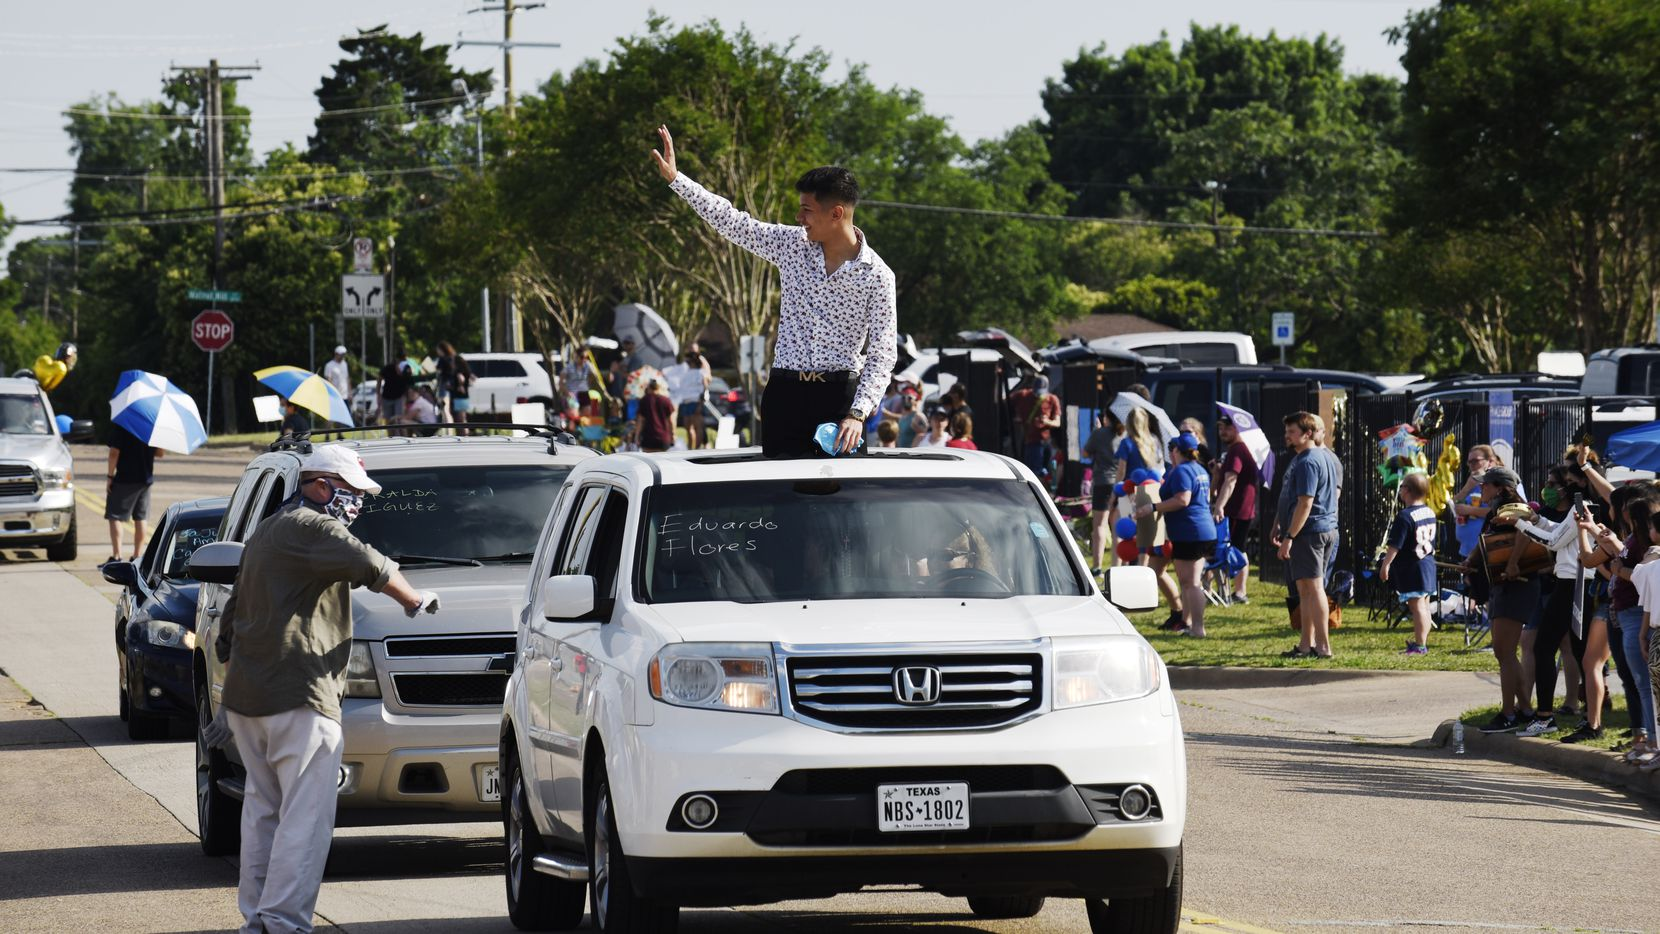 Senior Eduardo Flores, varsity soccer captain and president of the National Honor Society, waves to faculty and staff as his mom drives him through a senior parade outside of Thomas Jefferson high school in Dallas, Tuesday afternoon May 19, 2020. The event titled Senior Sunset, treated the graduating seniors to a parade while receiving personalized graduation signs and their cap and gown.